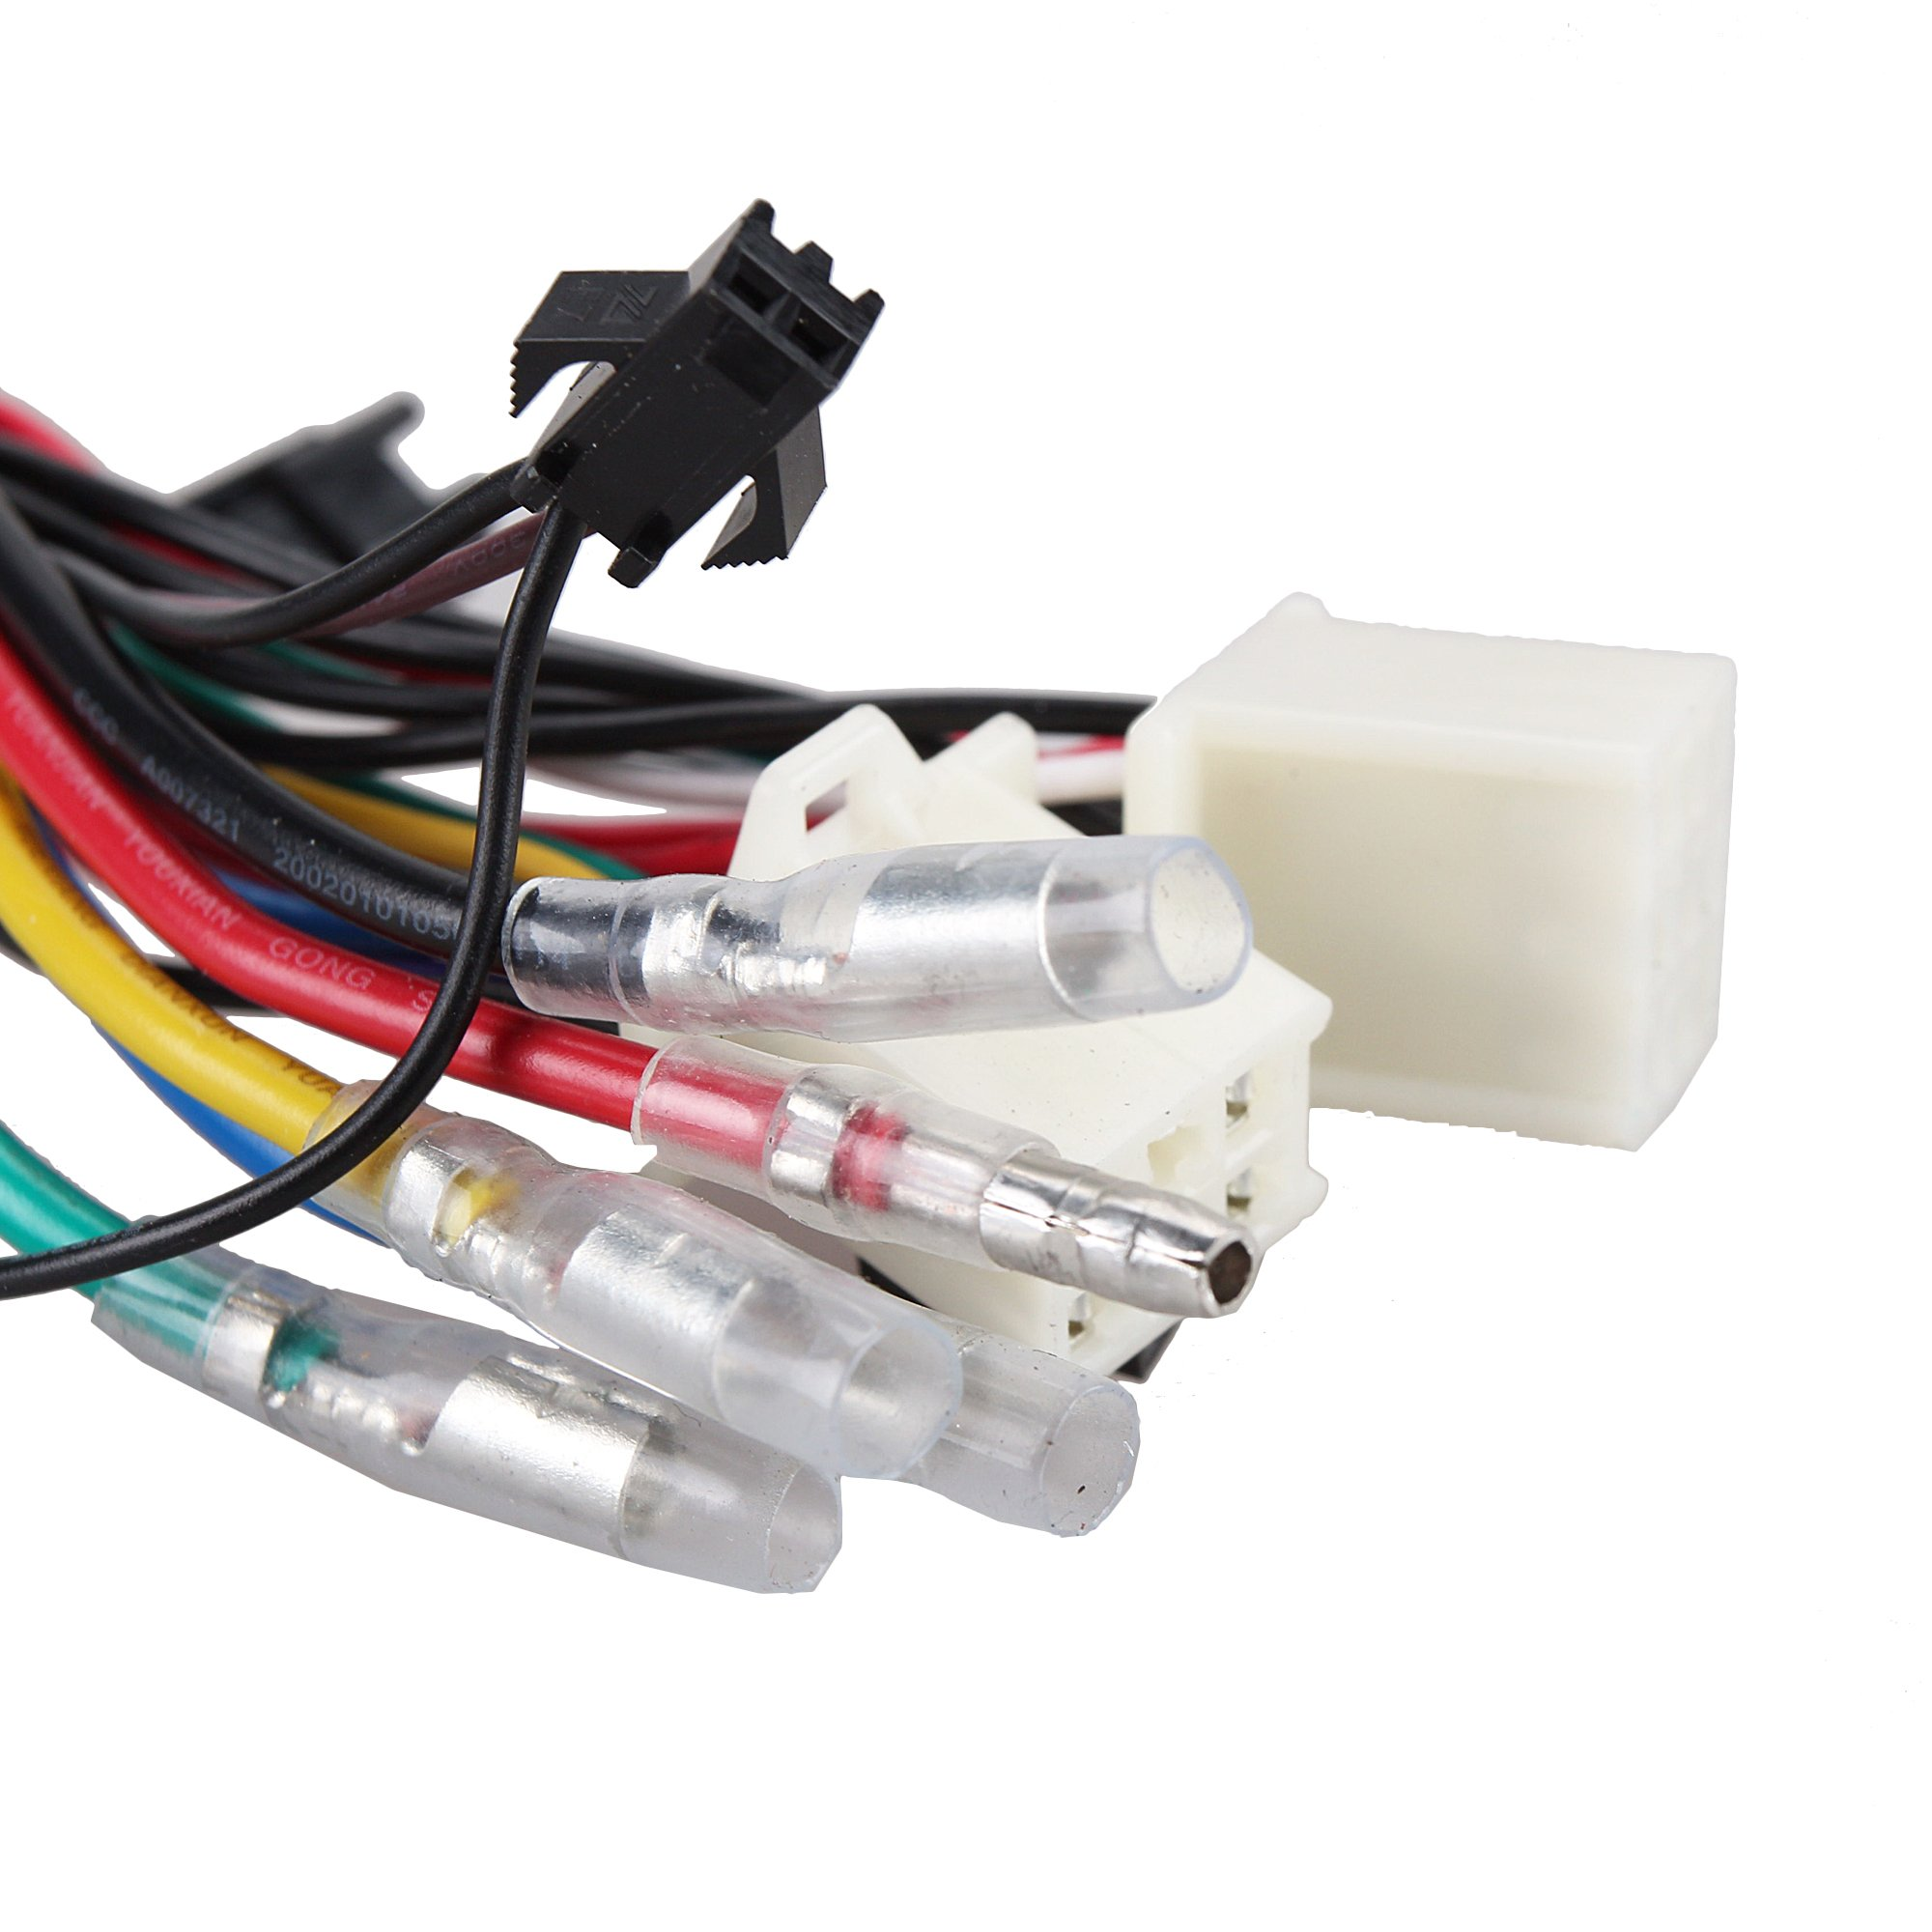 Nakto Spark City Electric Bicycle Controller for Spark 26''/20''/22'' City Ebike by Nakto (Image #3)